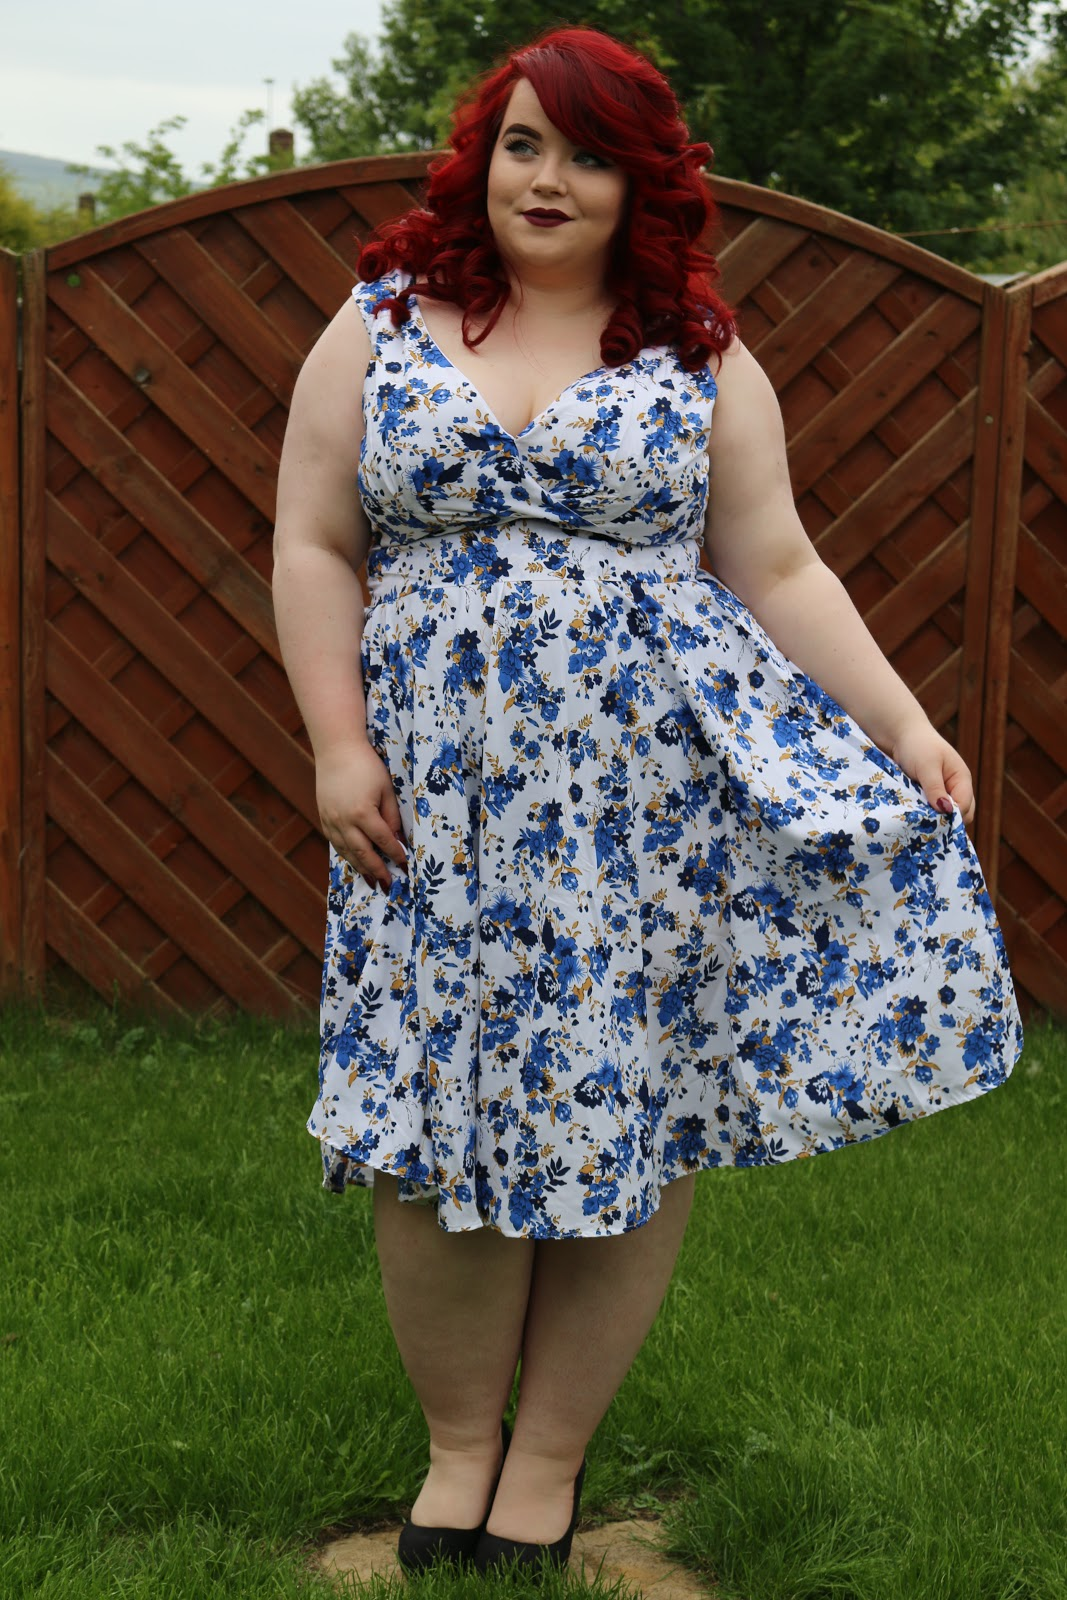 Vintage Clothing Do You Think Its Coming Back: BBW Couture's Floral 1950s Vintage Party Dresses